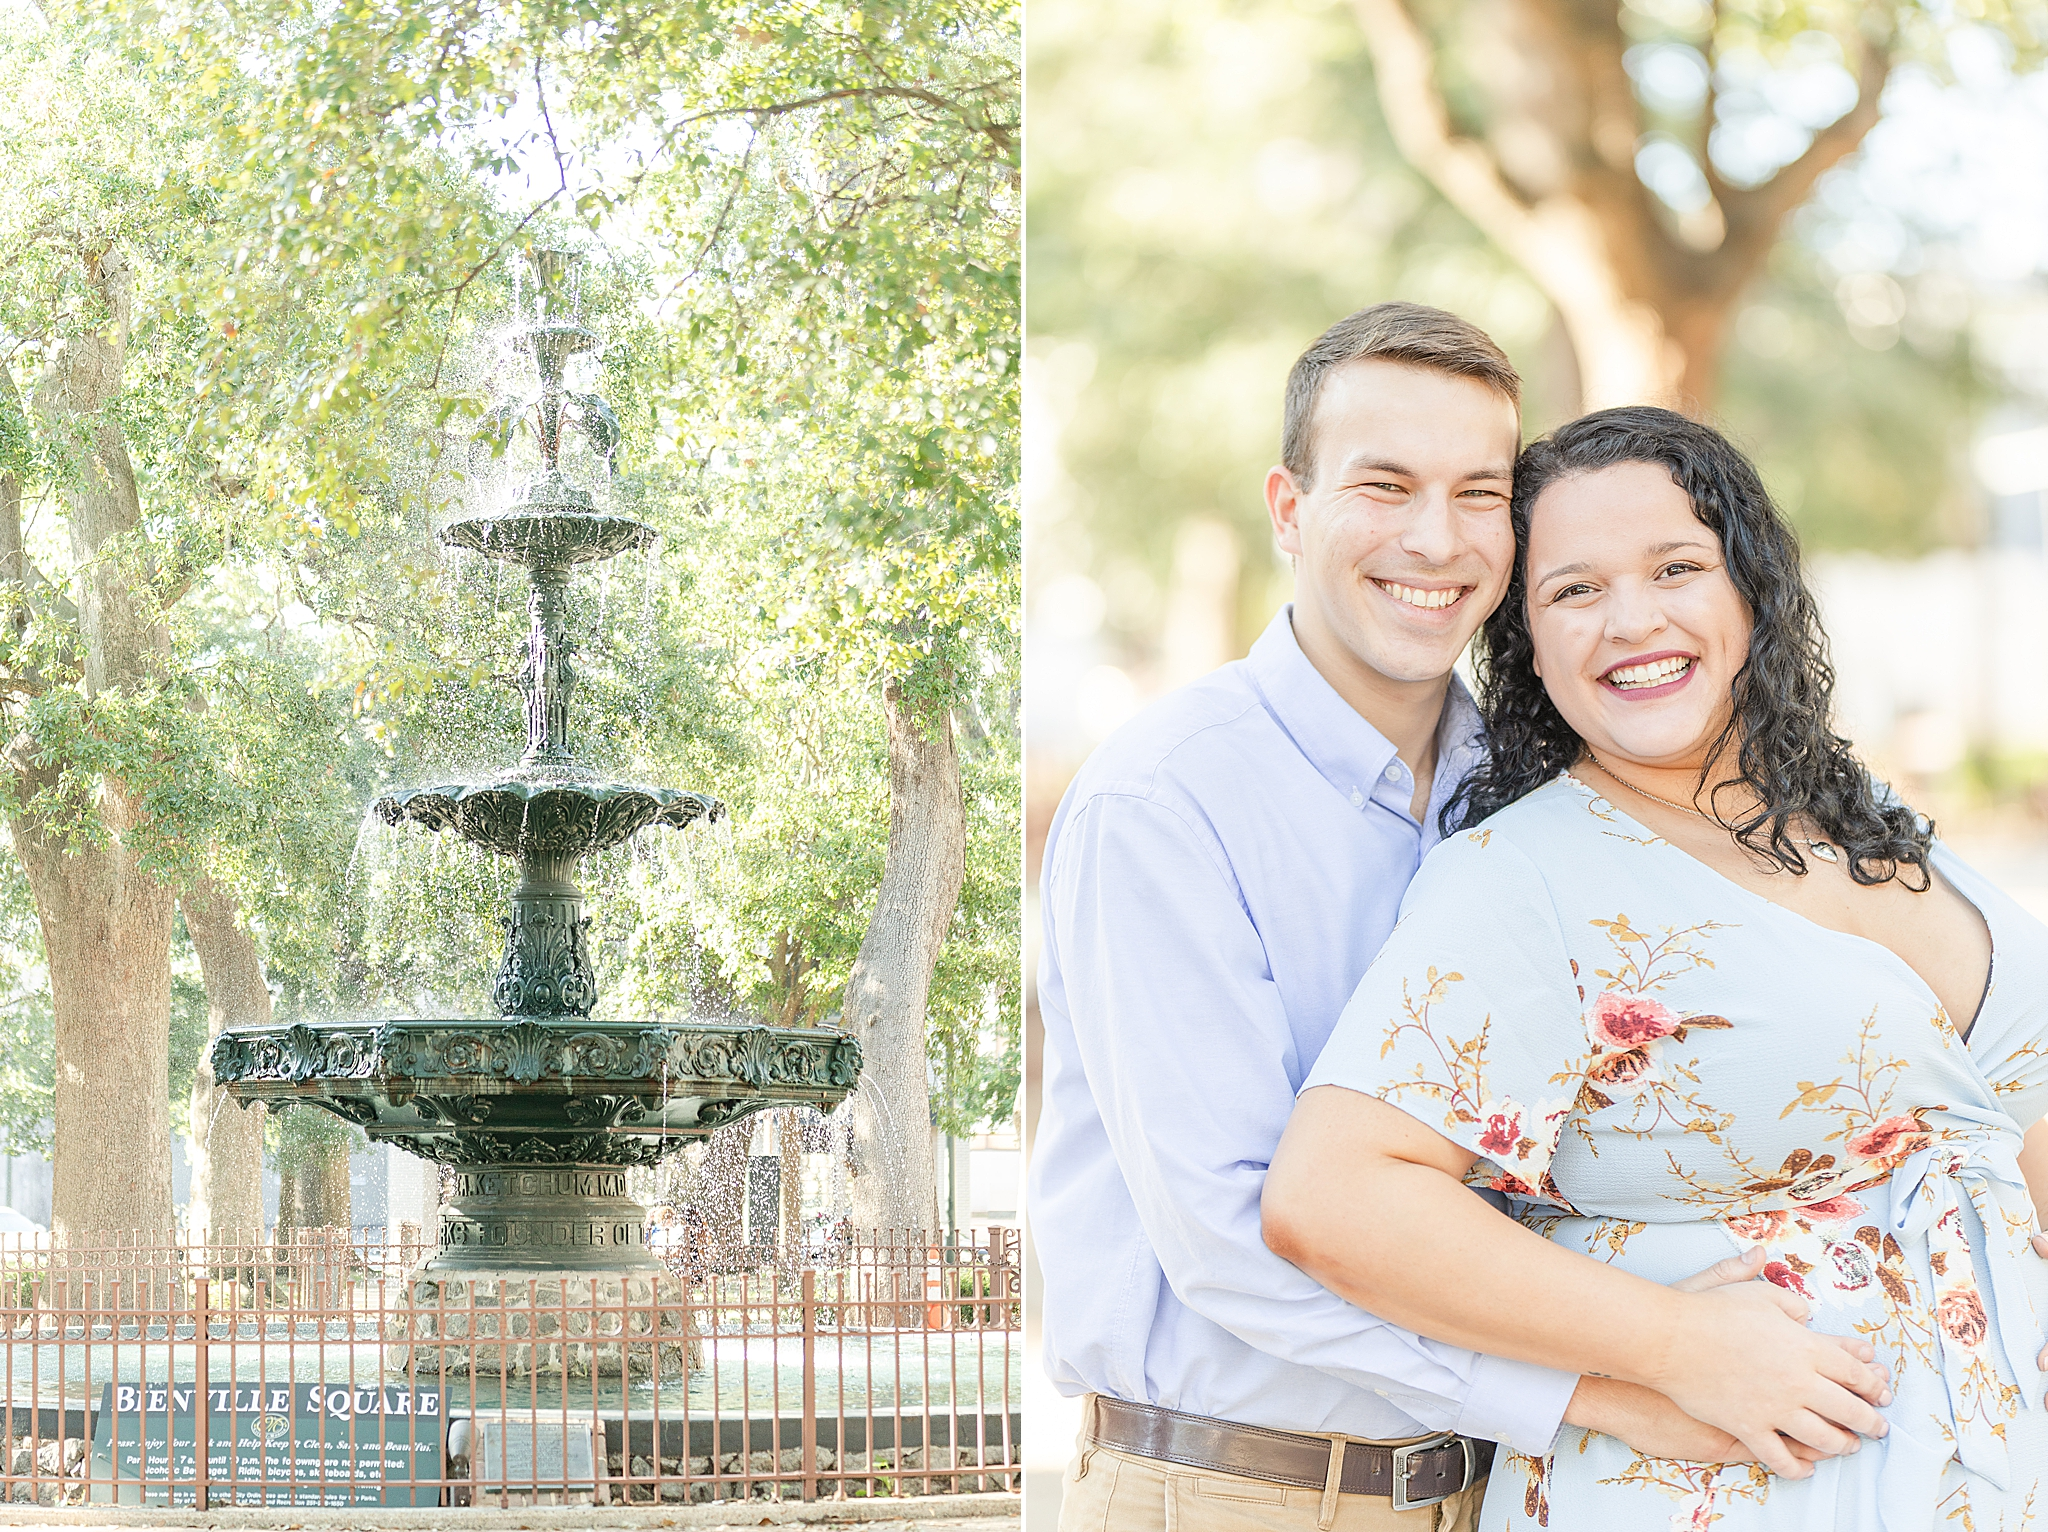 couple poses by fountain in Bienville Square